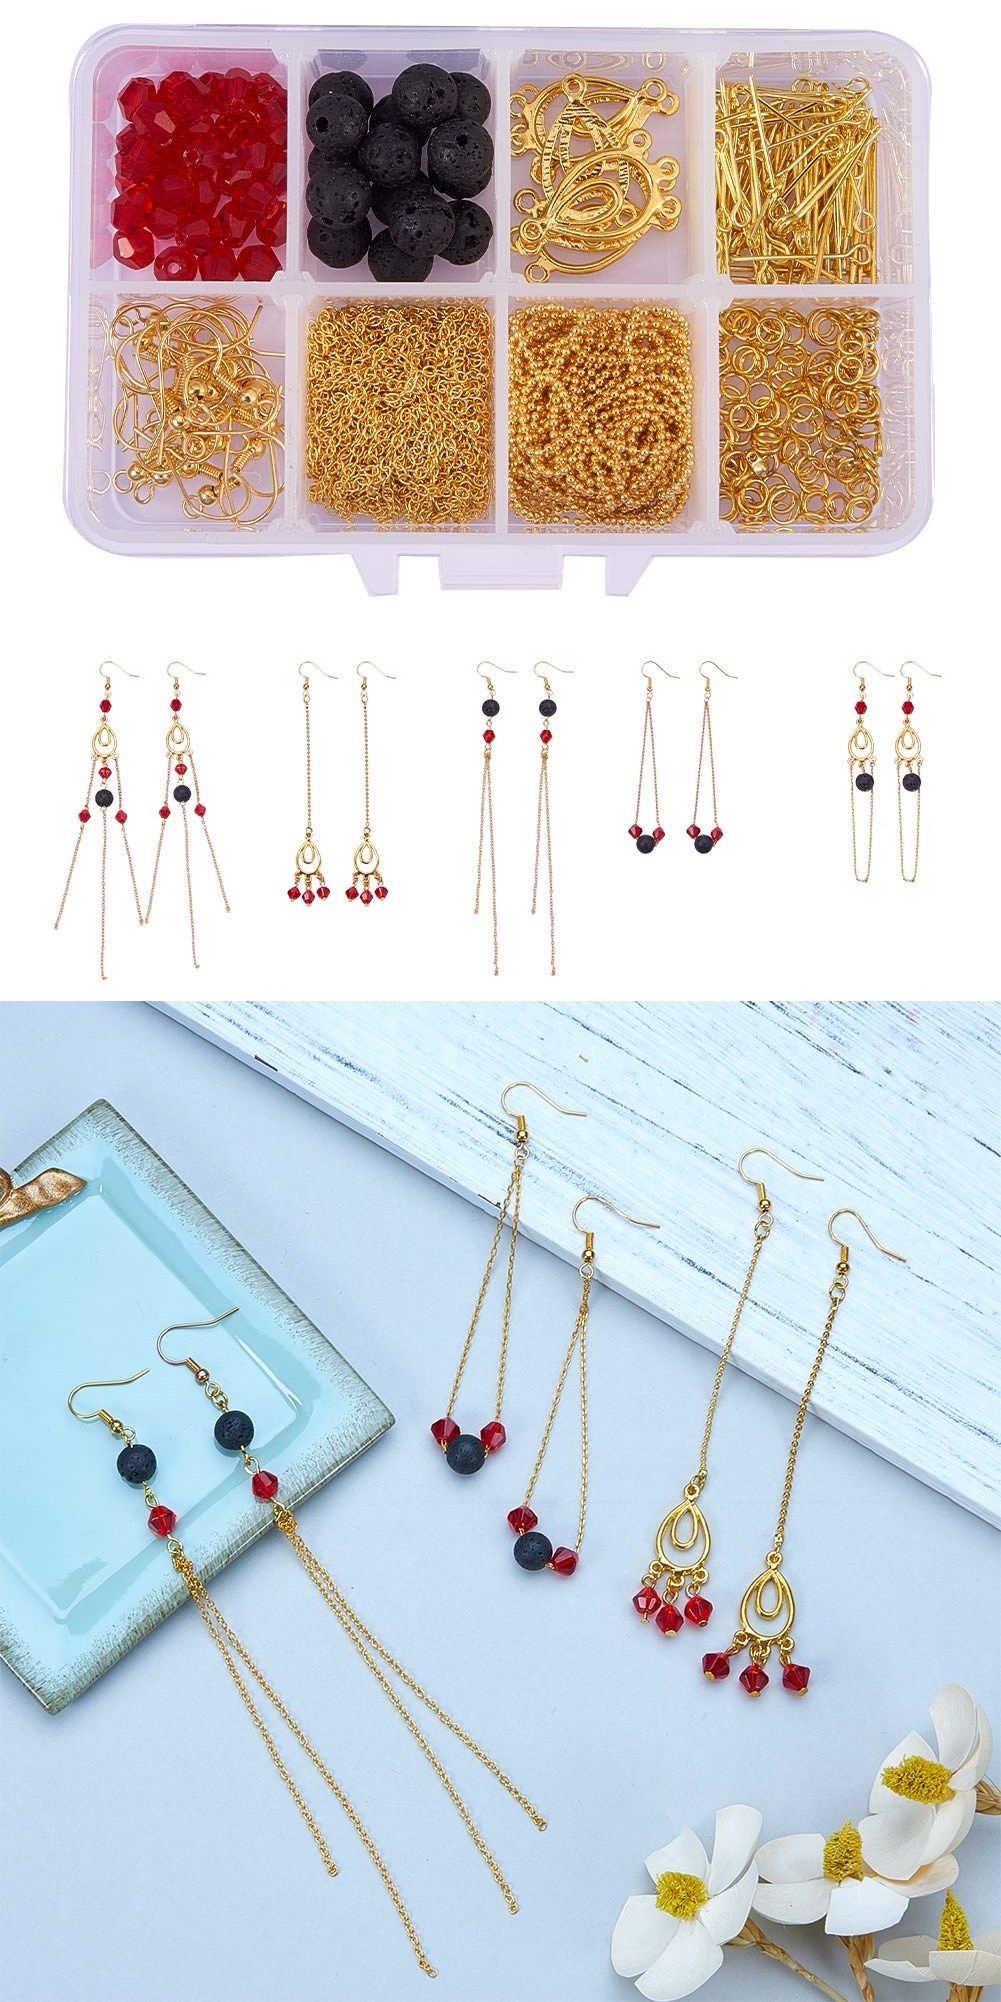 Photo of SUNNYCLUE 1 Box DIY 10 Pairs Golden Natural Lava Stone Jewelry Making Kits Rock Long Chain Tassel Dangle Drop Earring Making Starter Kit for Beginners